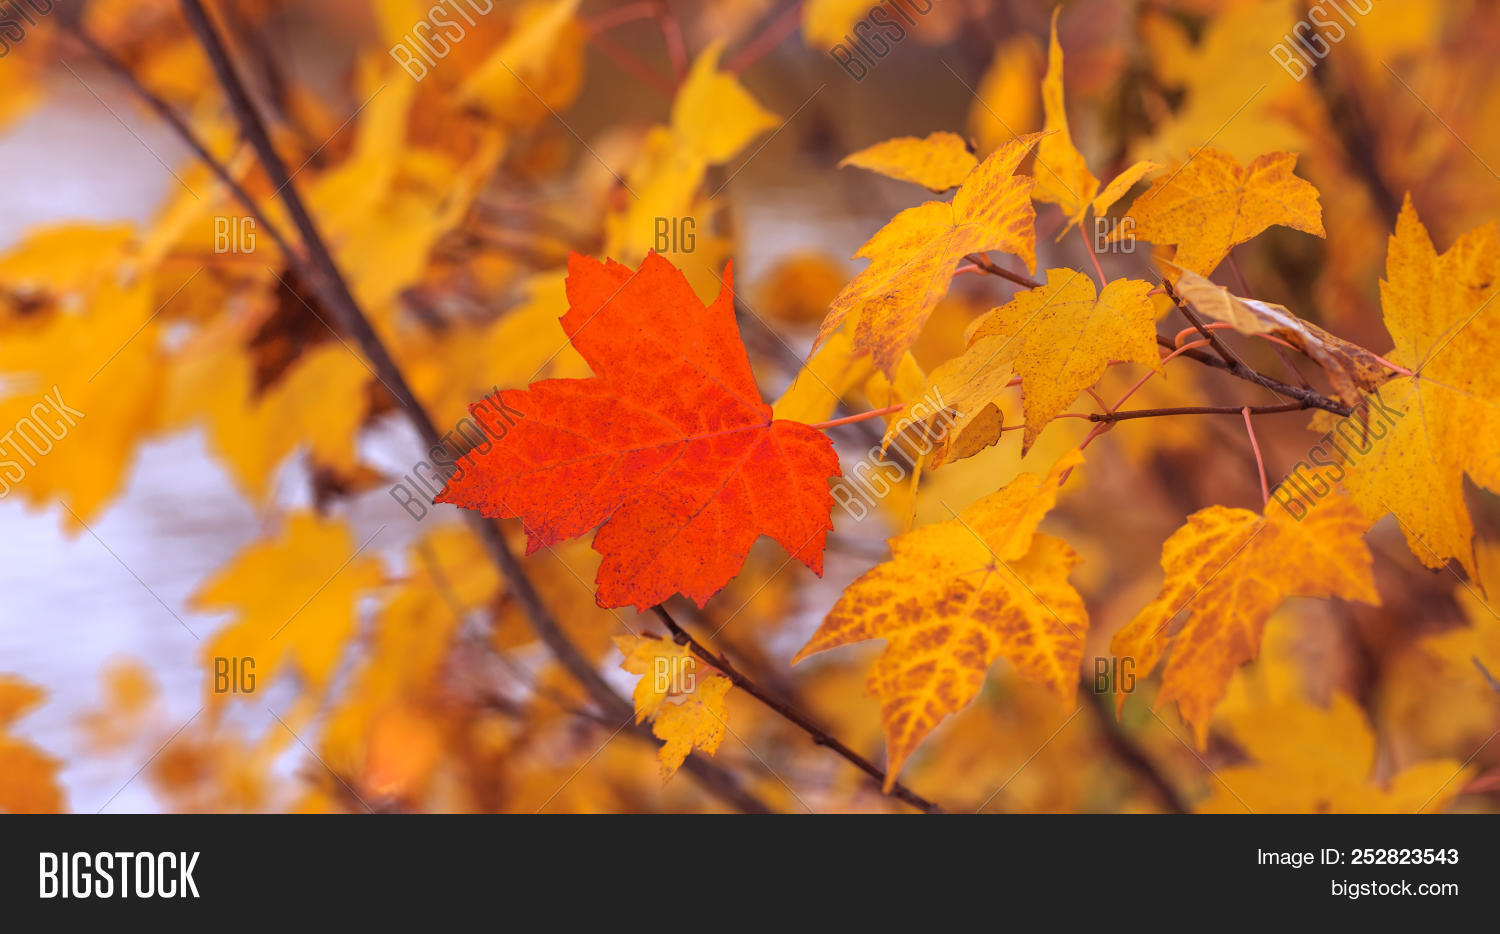 Red Maple Leaf Image Photo Free Trial Bigstock